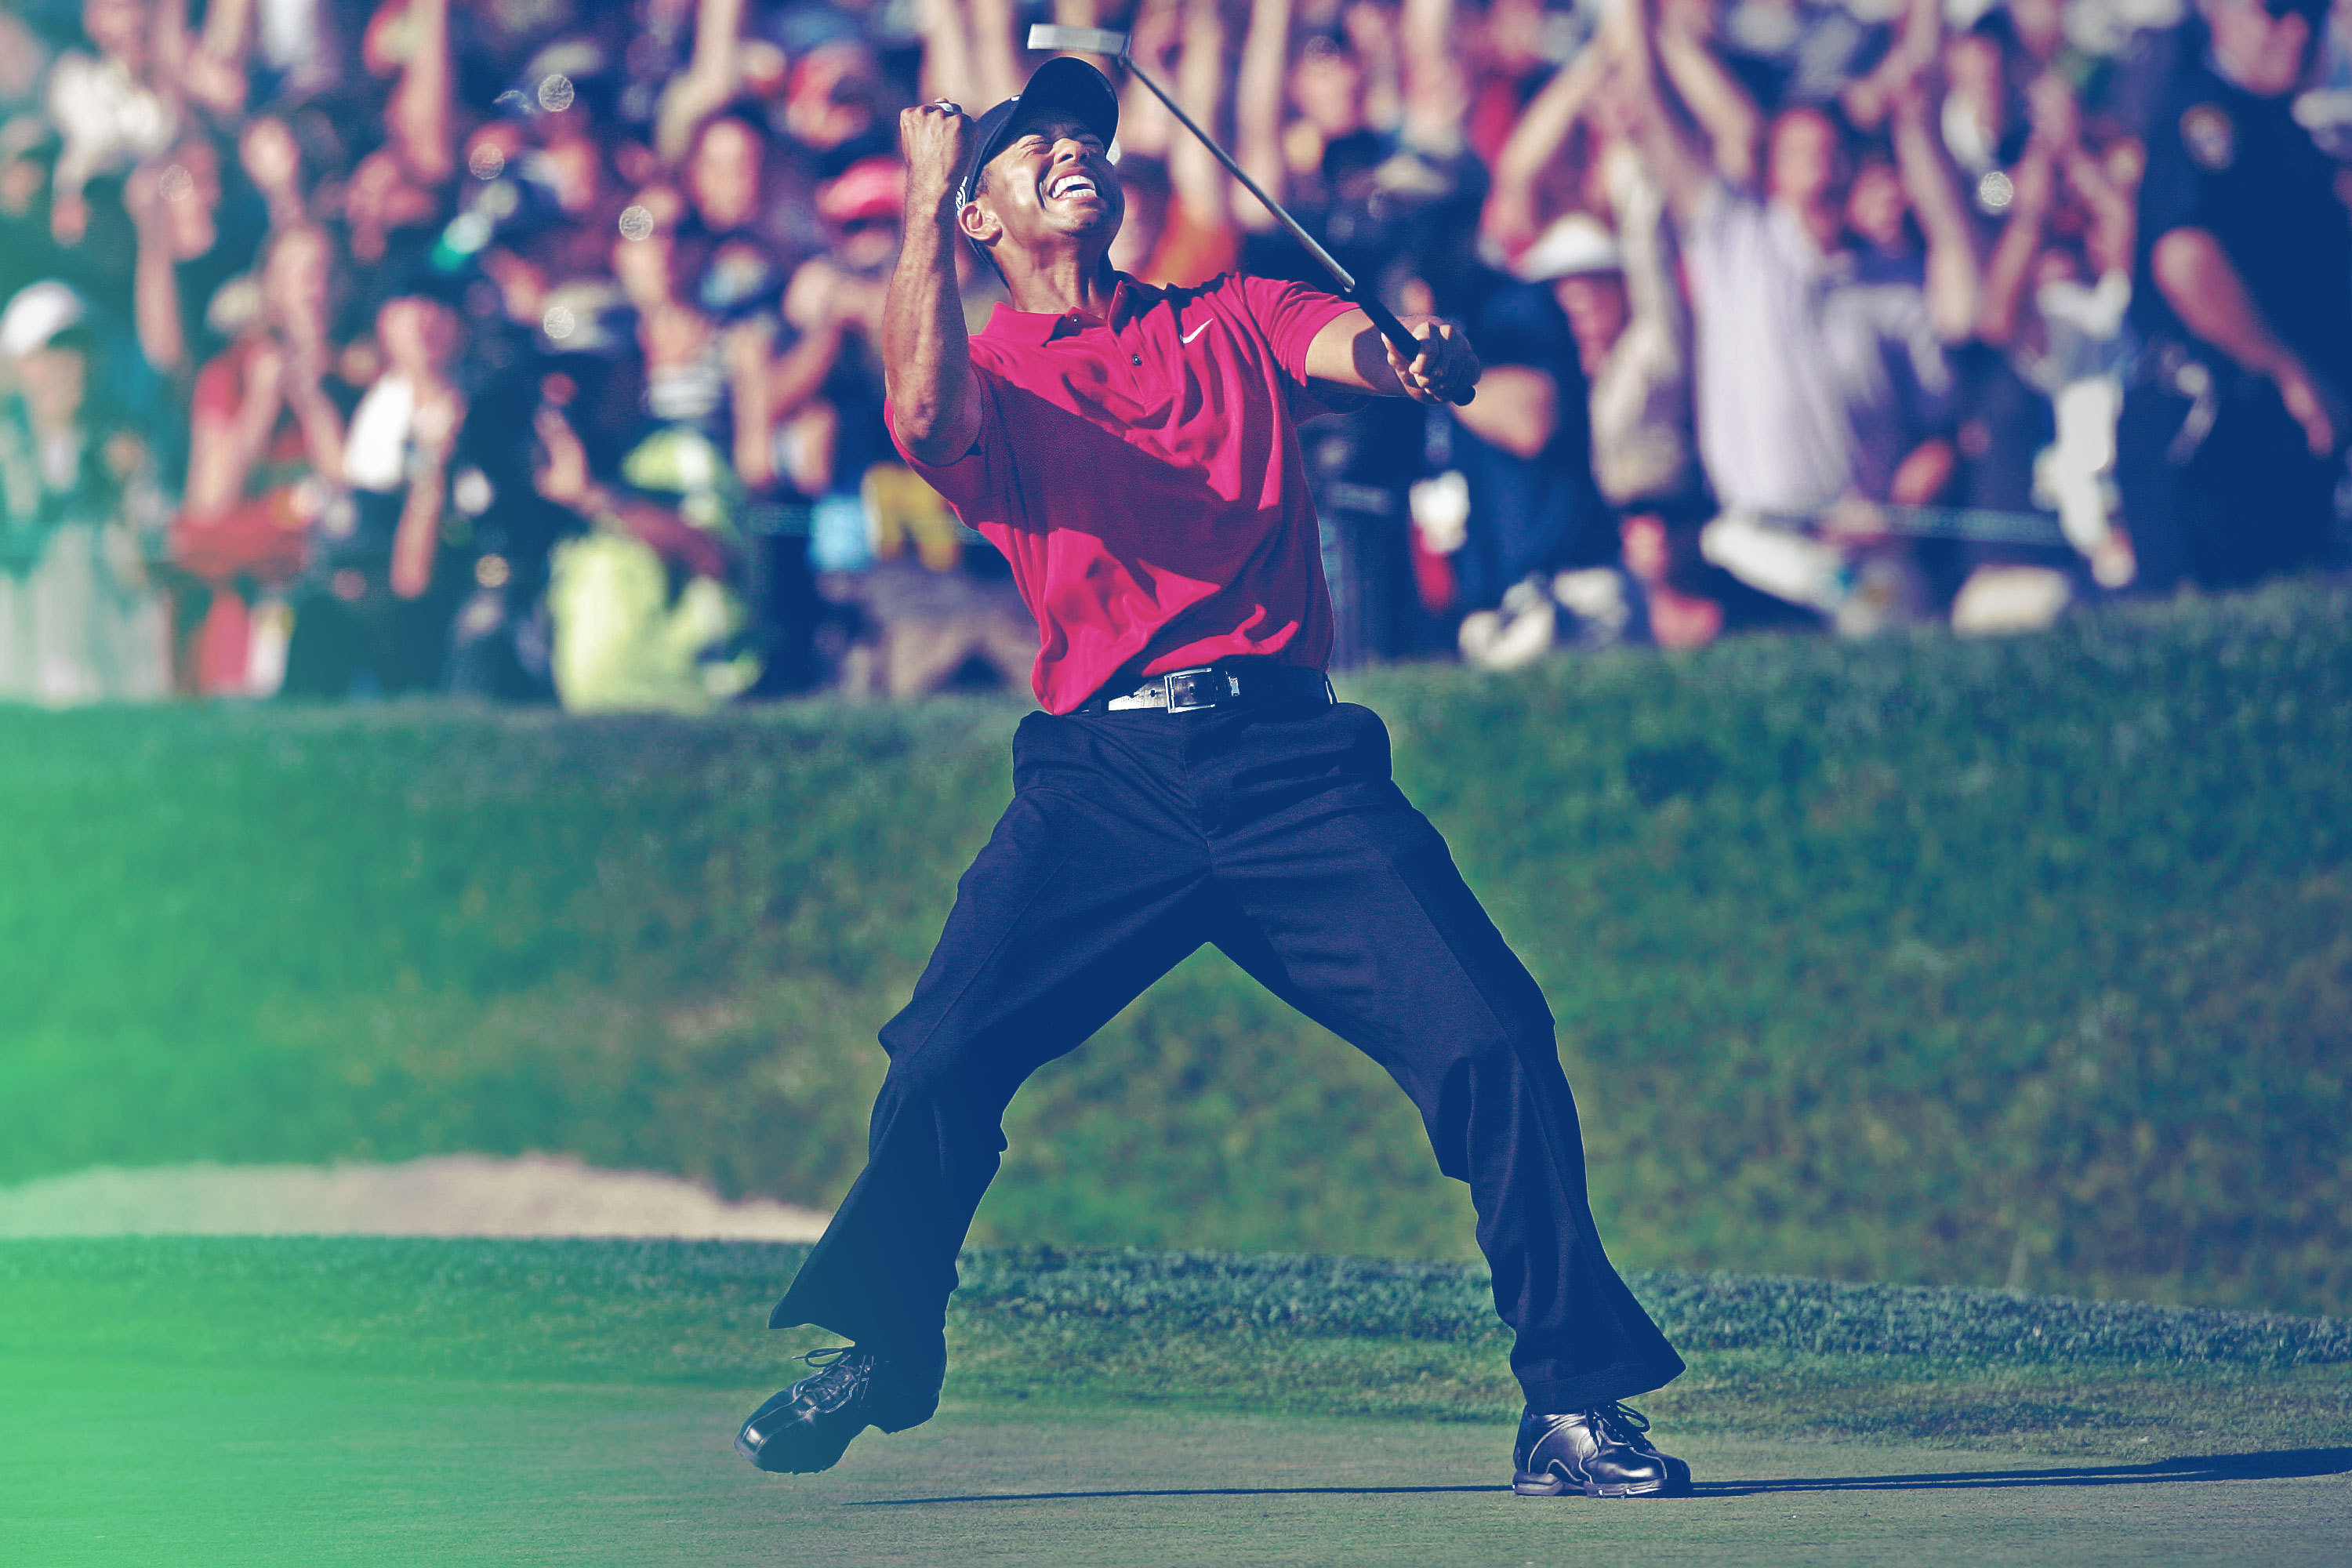 Tiger's Last Stand: Woods' Writhing, Painful 2008 US Open ...